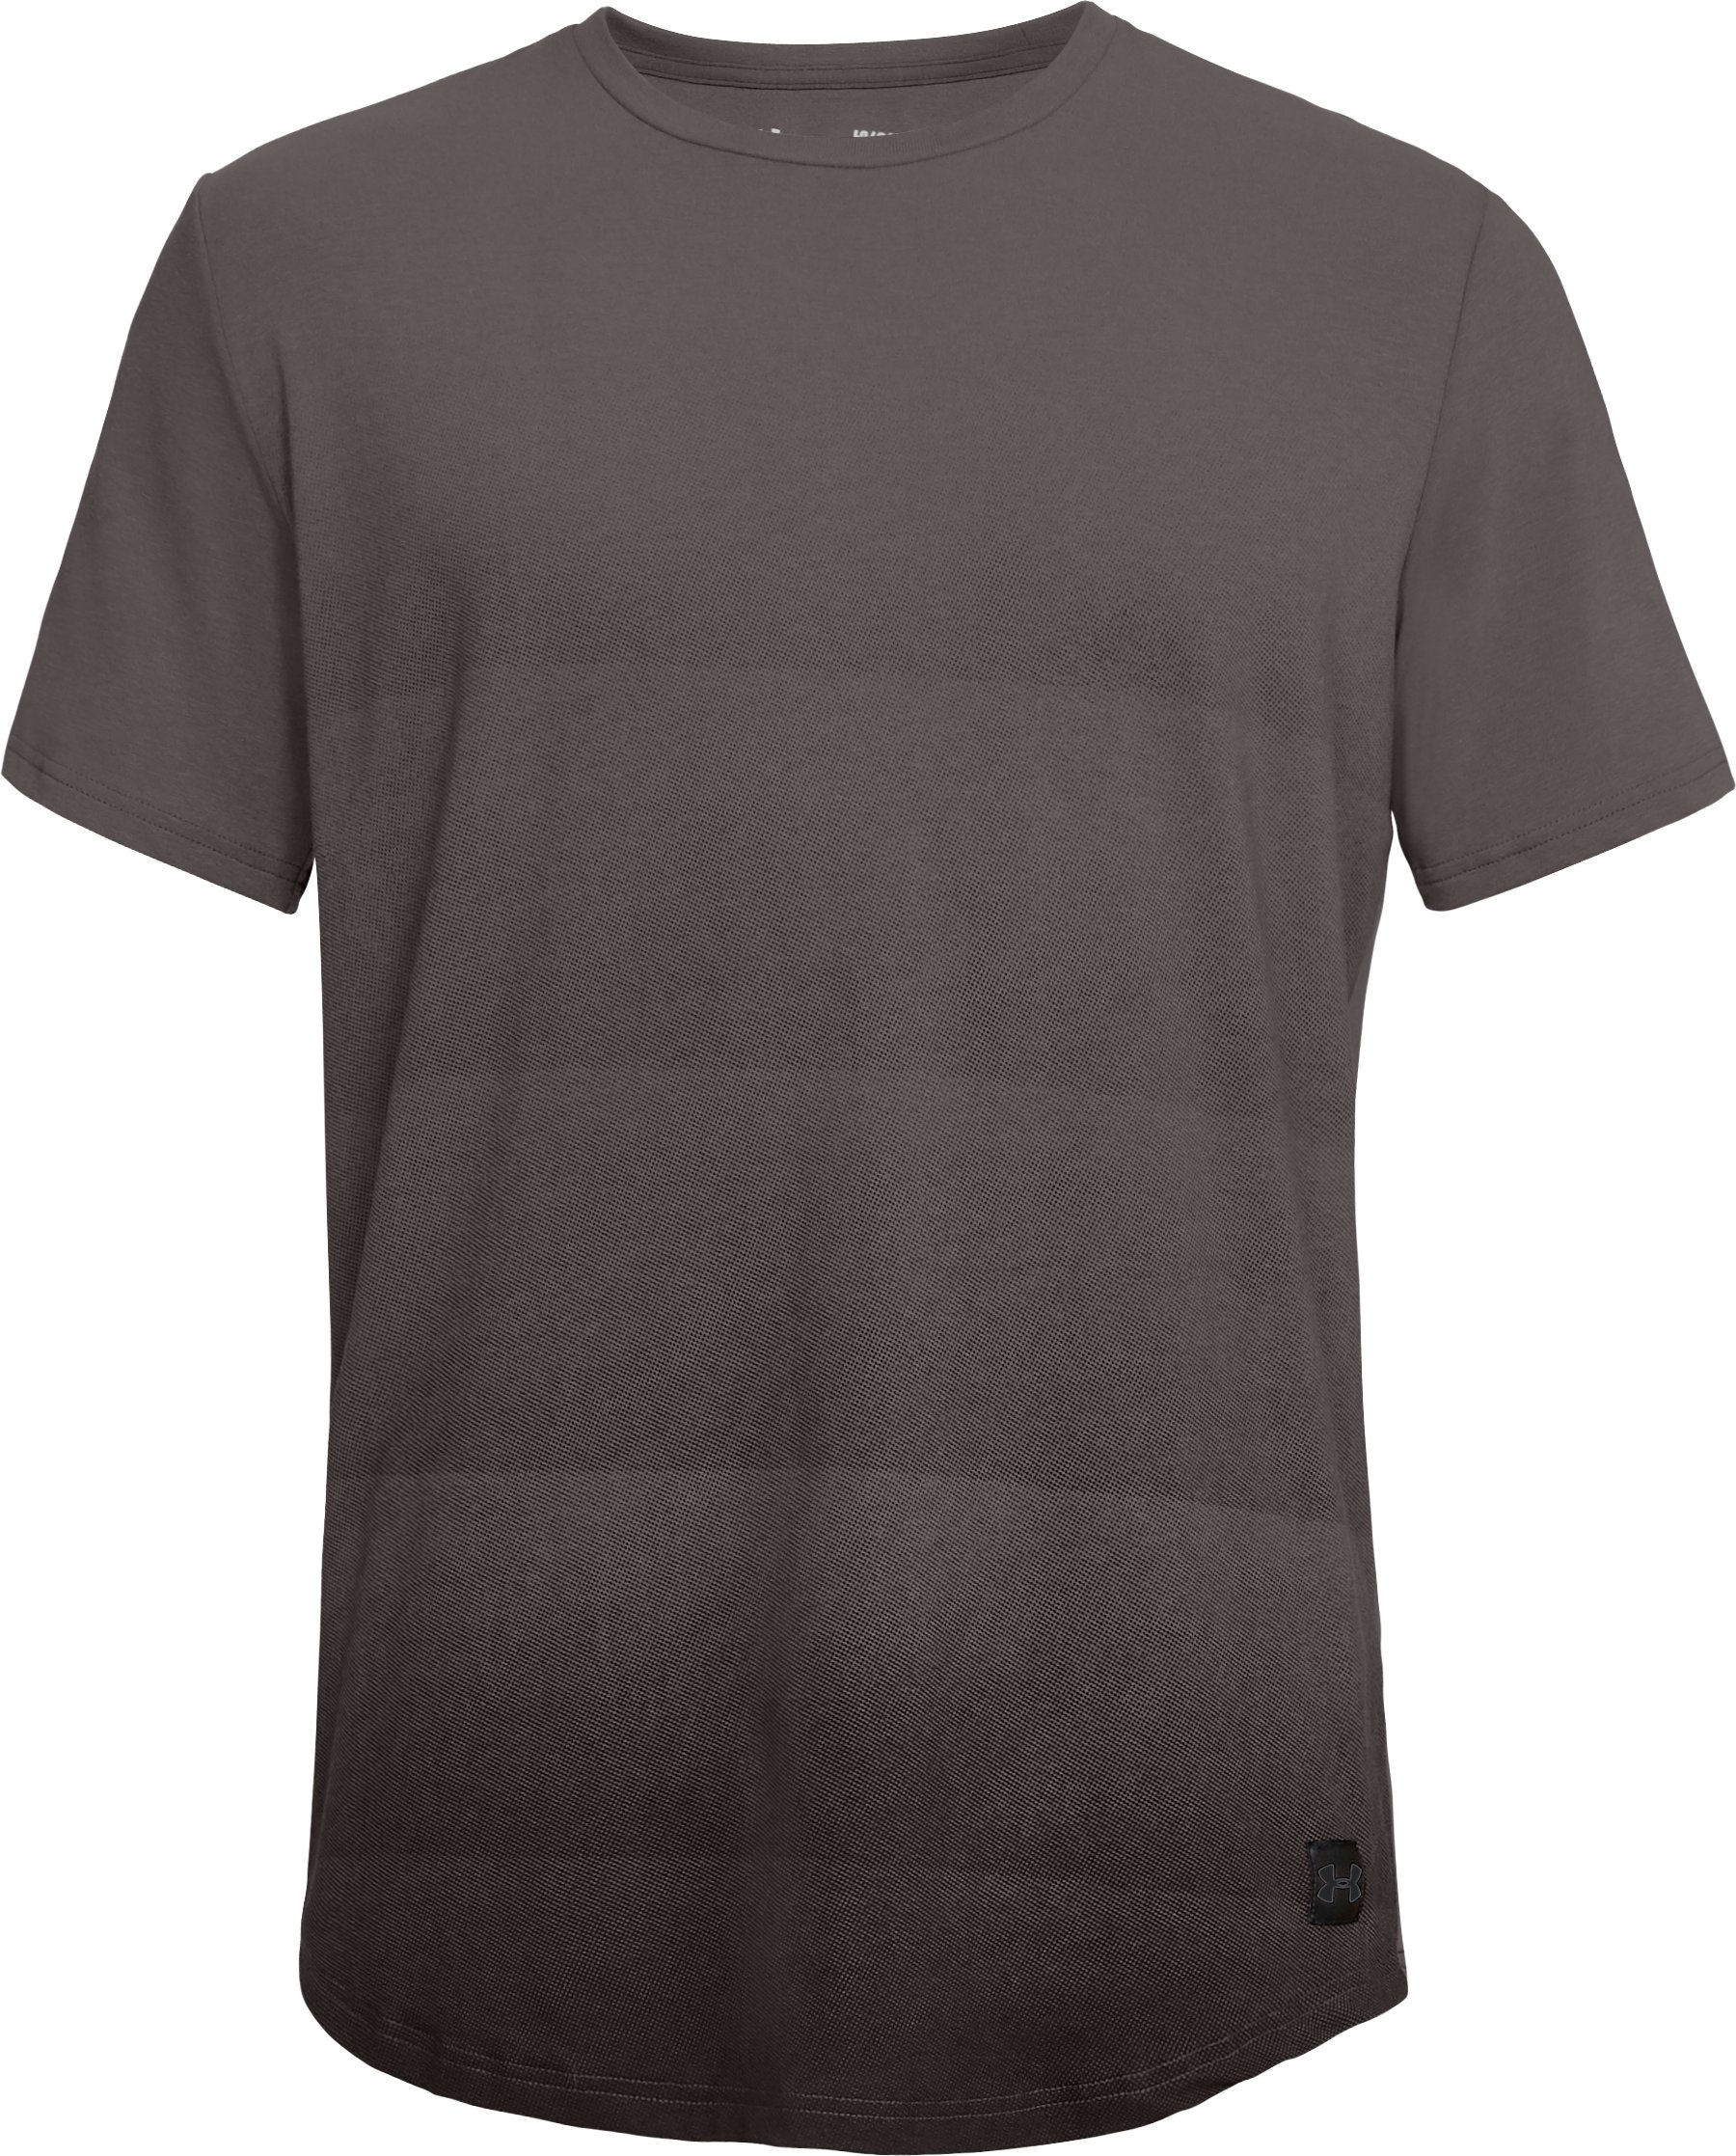 Men's UA Sportstyle Gradual Short Sleeve Shirt, FRESH CLAY,